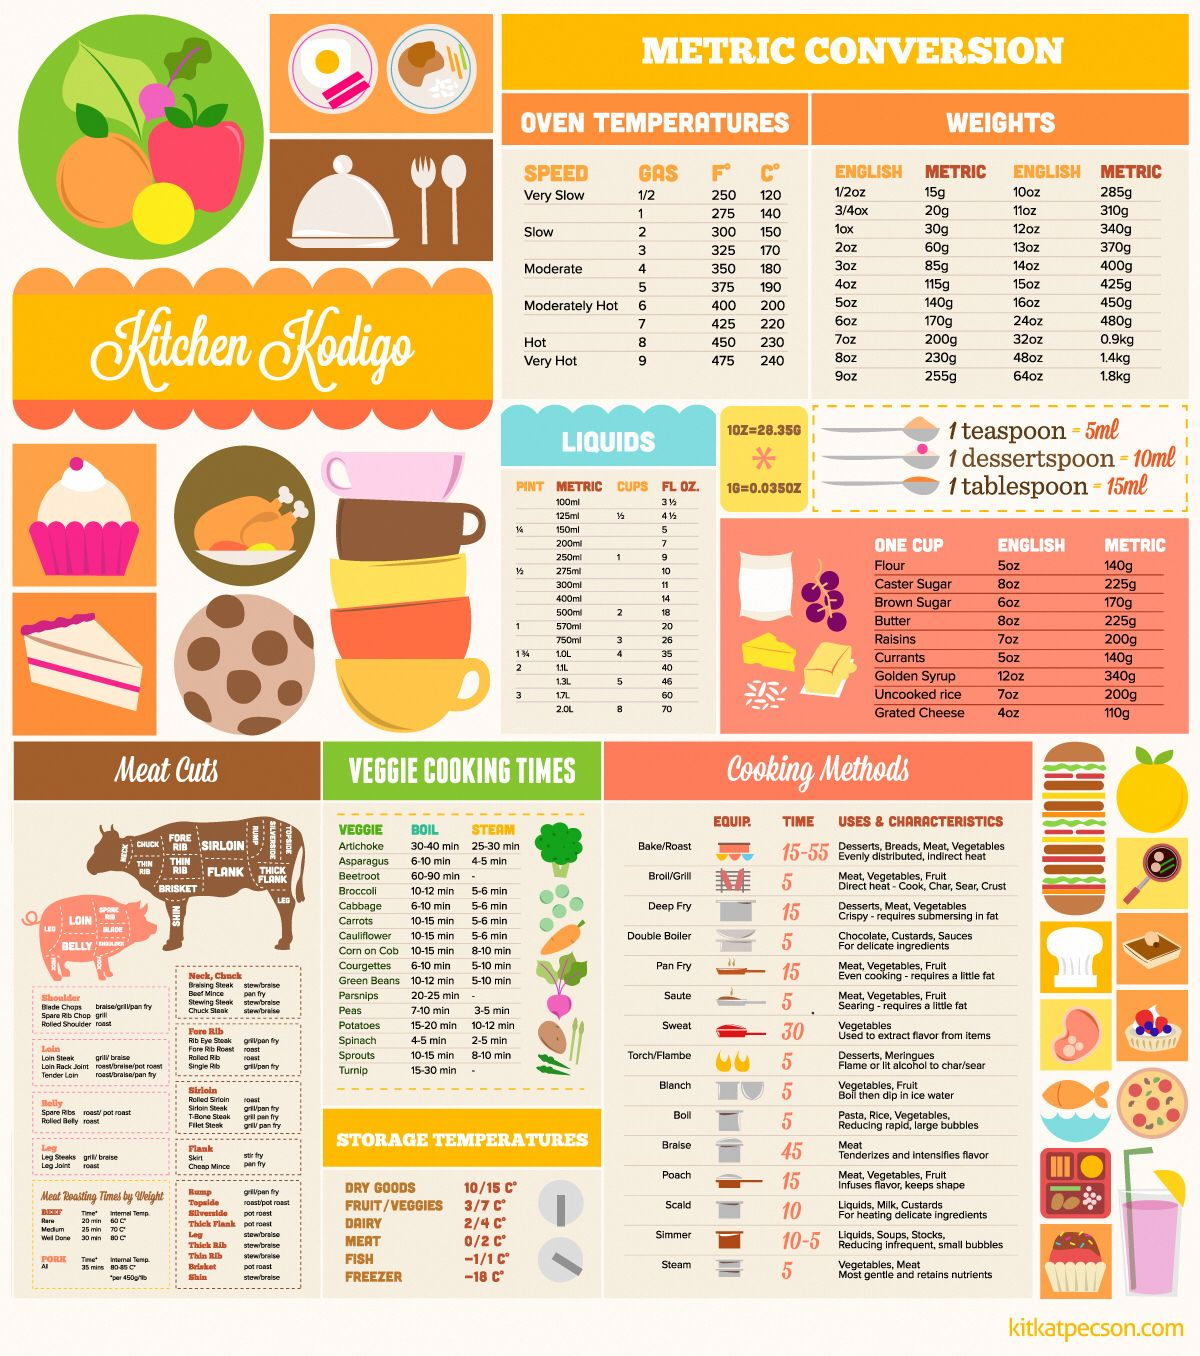 Cheat Sheets And More